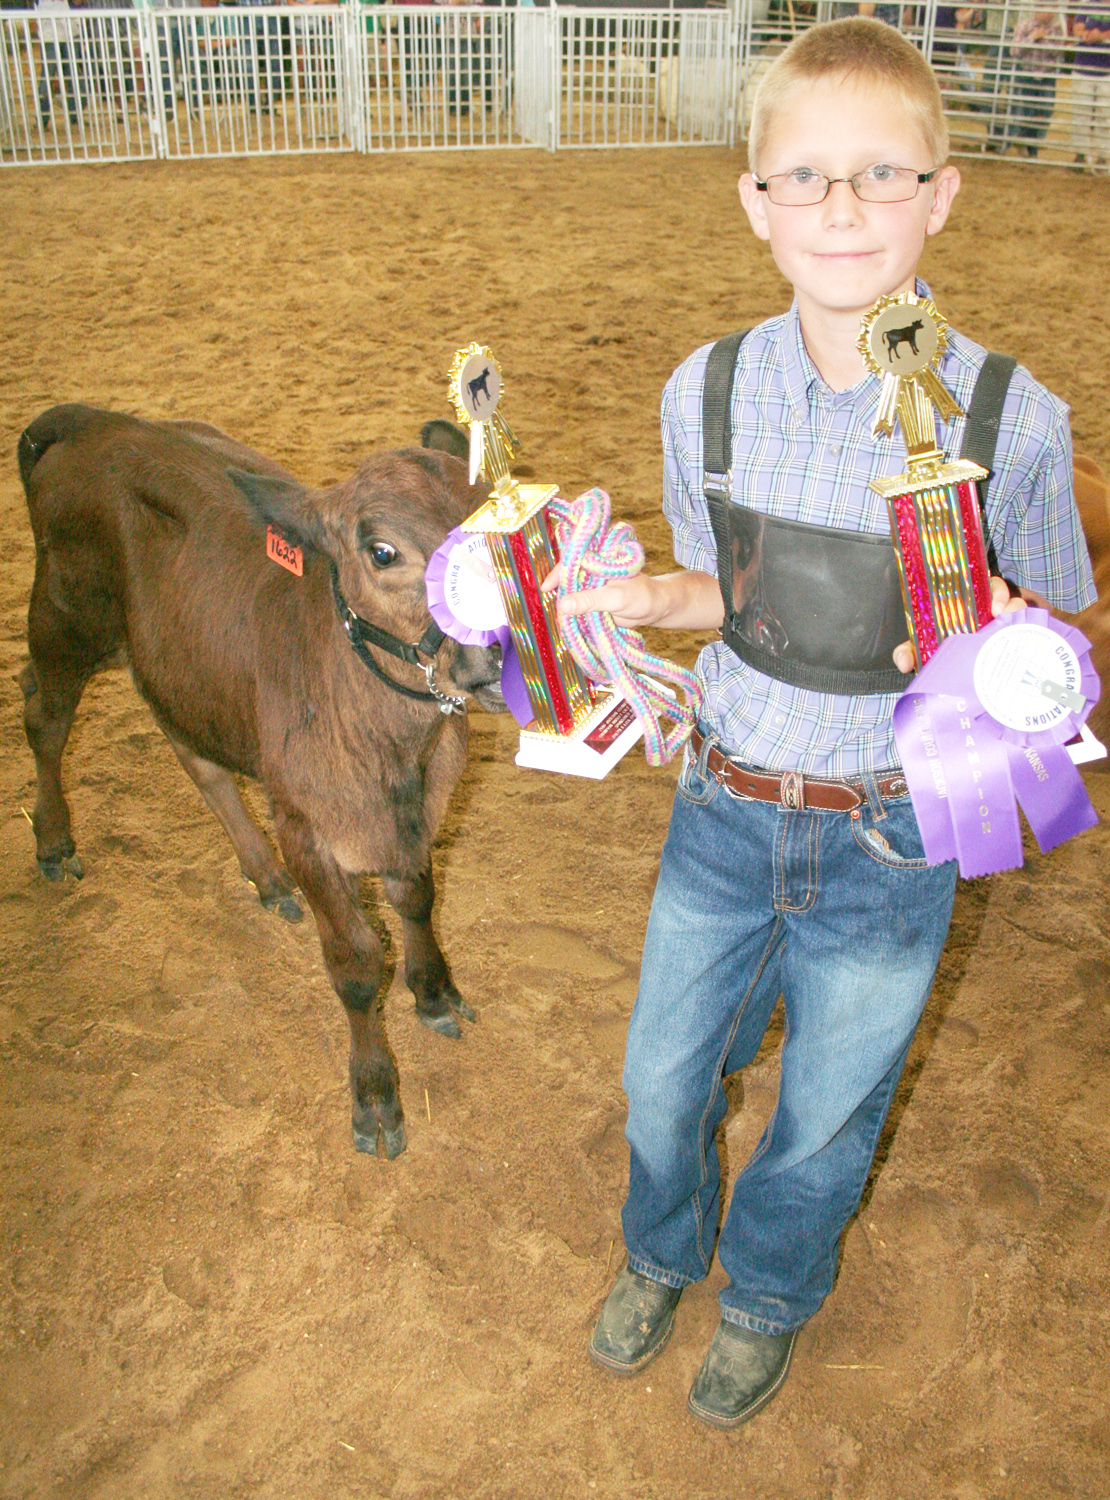 Kyler Kathrens of the Lucky Stars won best of show and overall champion honors in the 9-12 bucket calf show. (Photo by Brian Sanders)